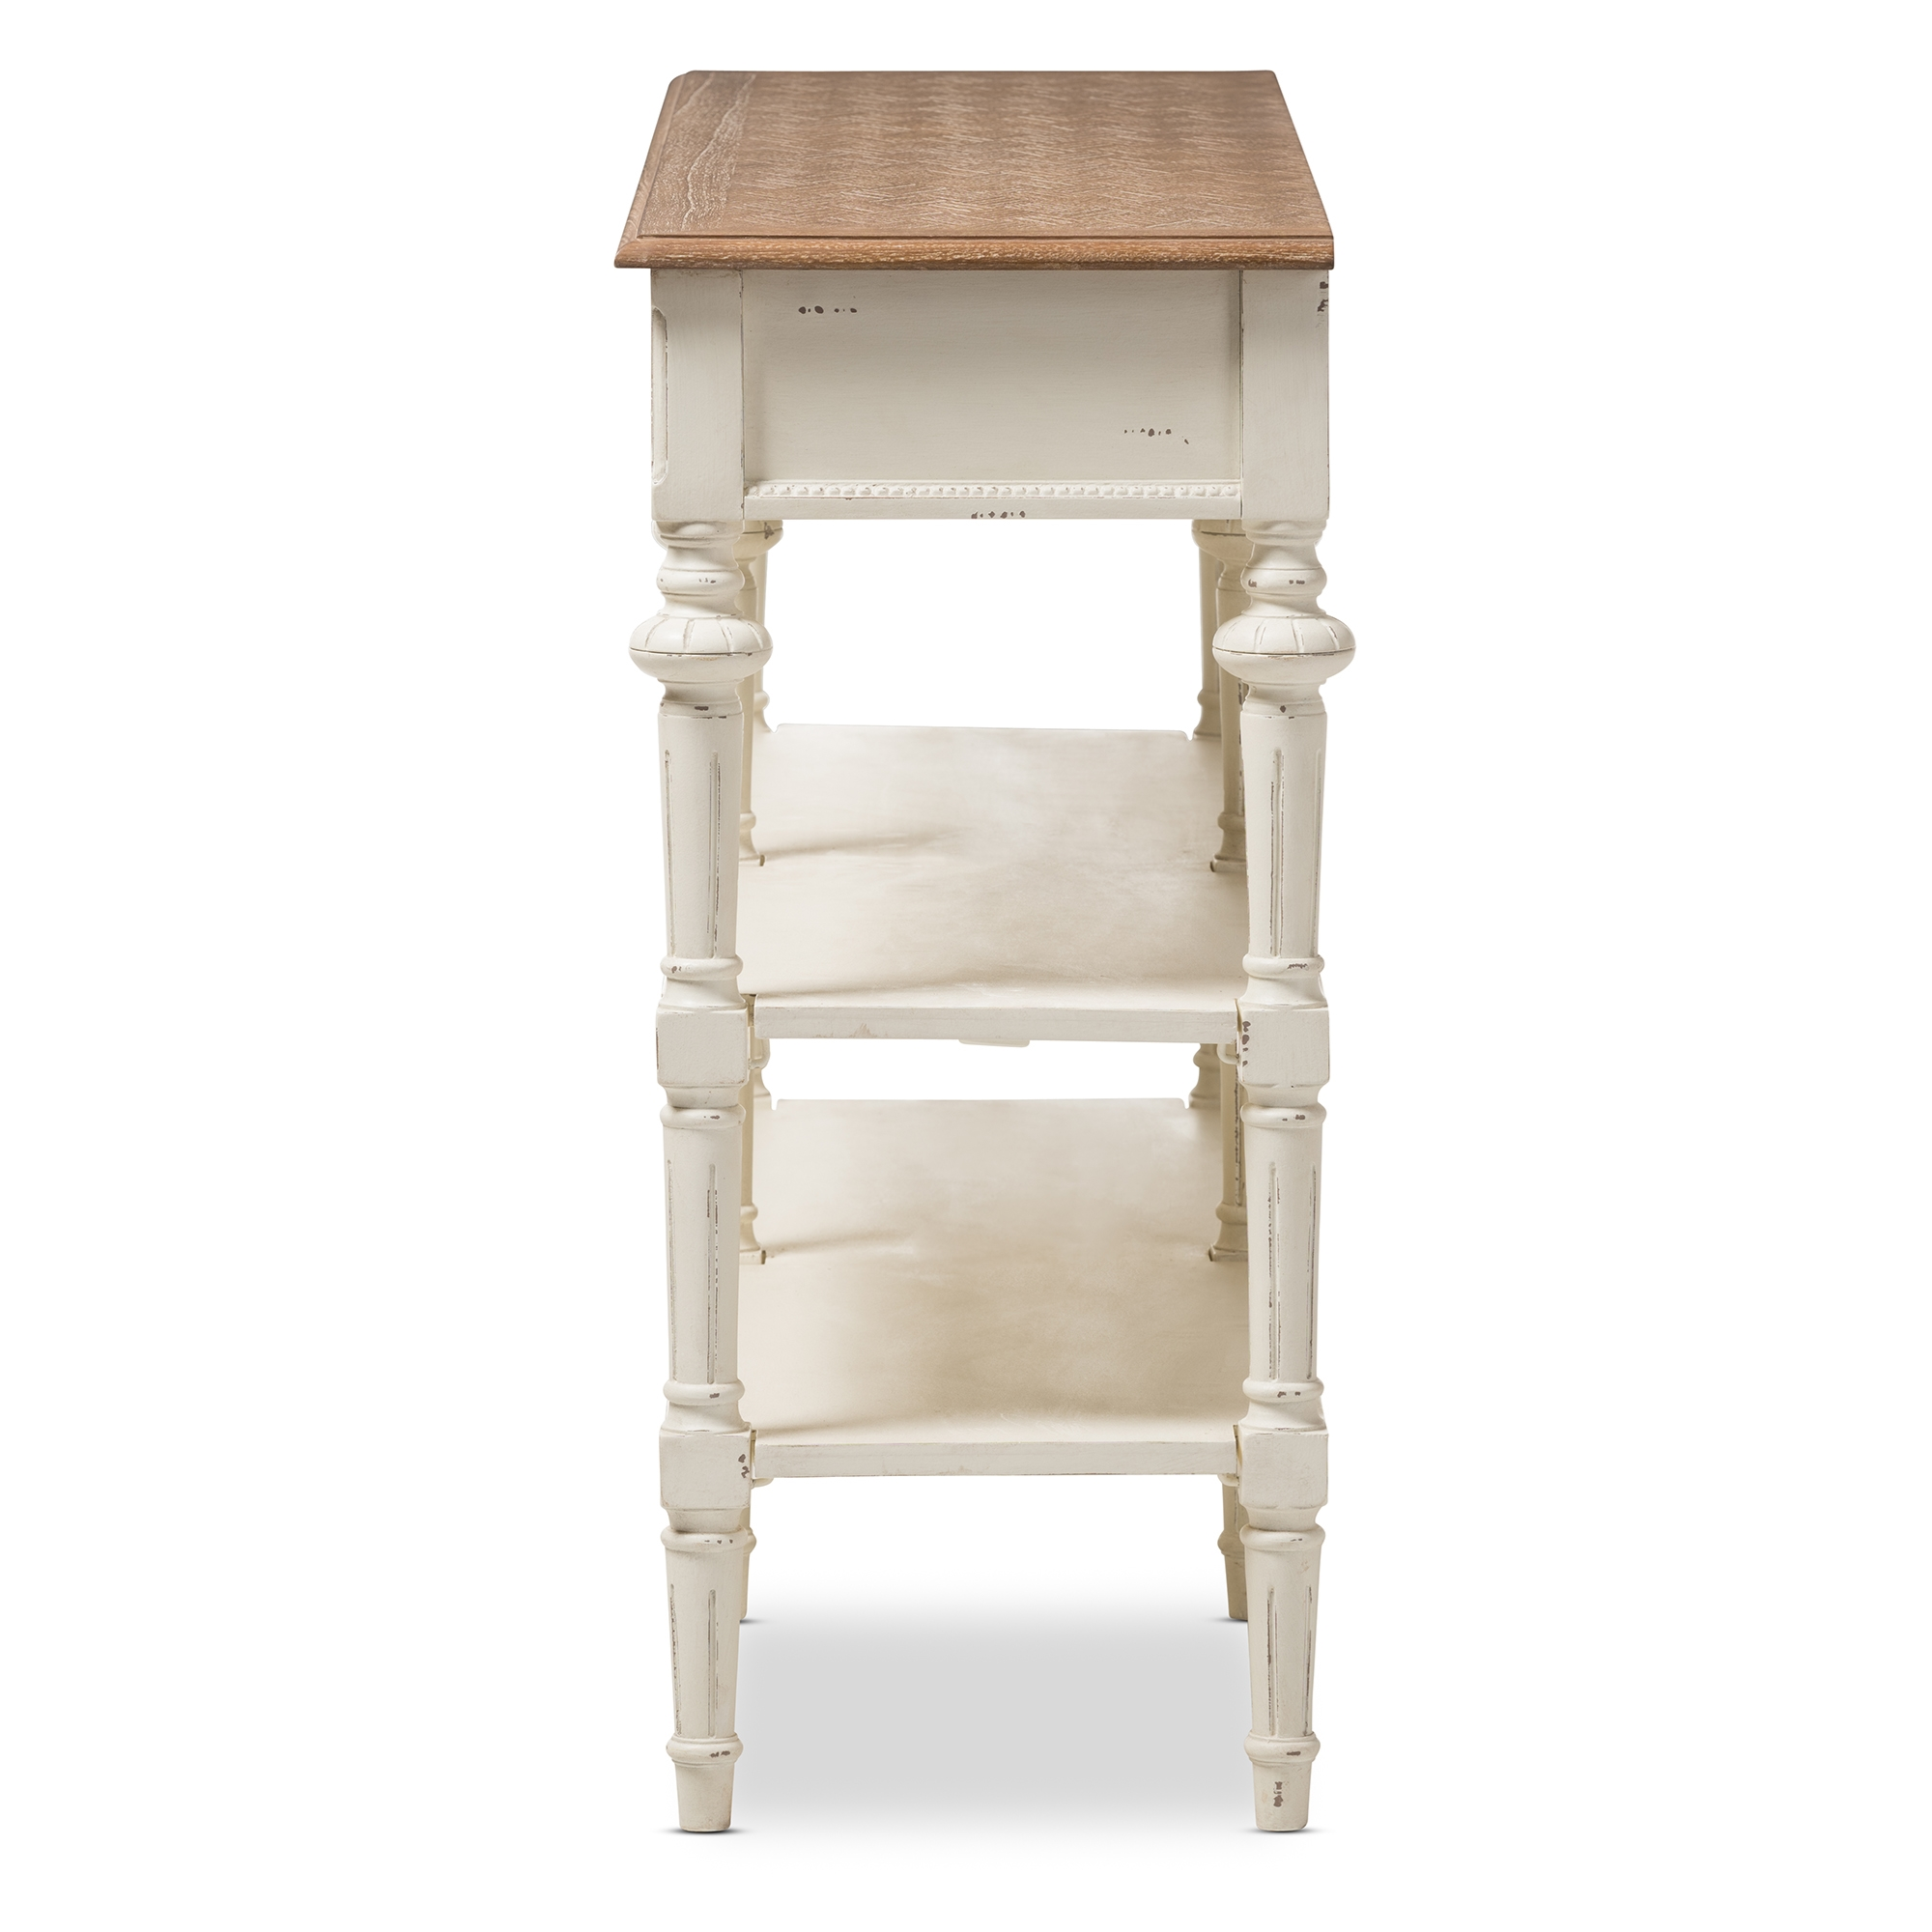 ... Baxton Studio Marquetterie French Provincial Weathered Oak And  Whitewash Console Table   PRL14VM(AR) ...